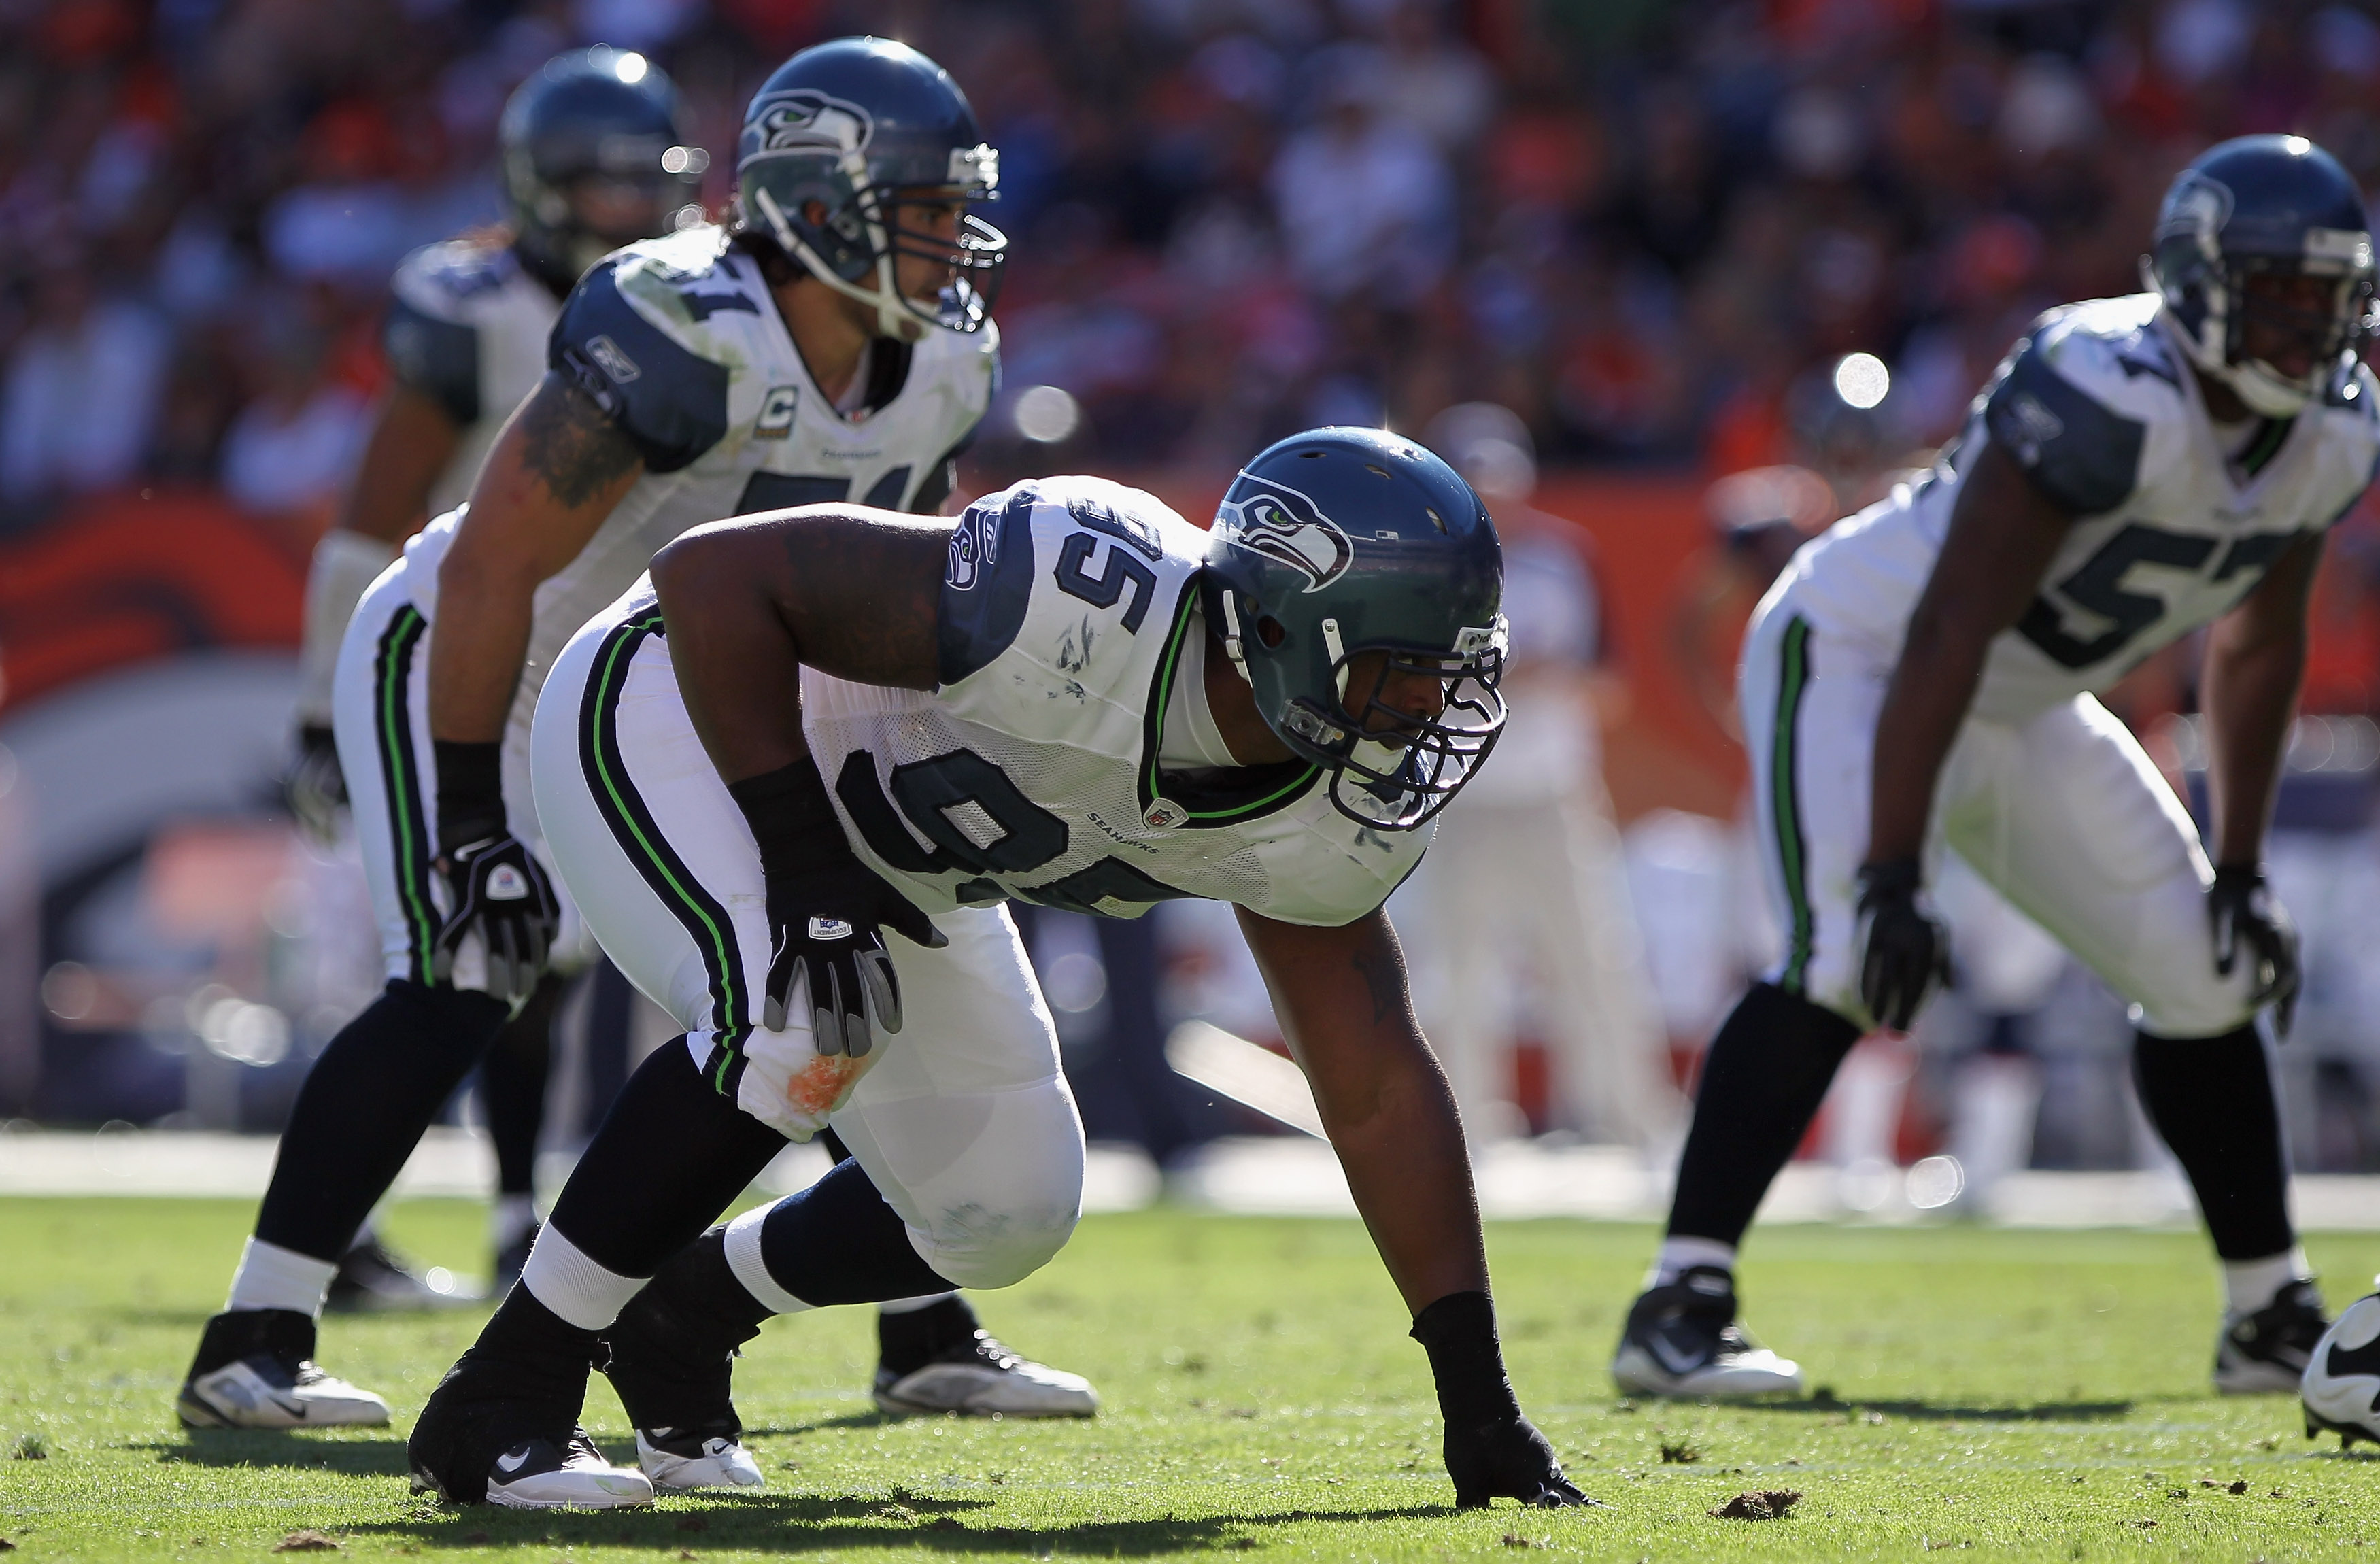 DENVER - SEPTEMBER 19:  Defensive tackle Kentwan Balmer #95 of the Seattle Seahawks awaits the snap against the Denver Broncos at INVESCO Field at Mile High on September 19, 2010 in Denver, Colorado The Broncos defeated the Seahawks 31-14..  (Photo by Dou